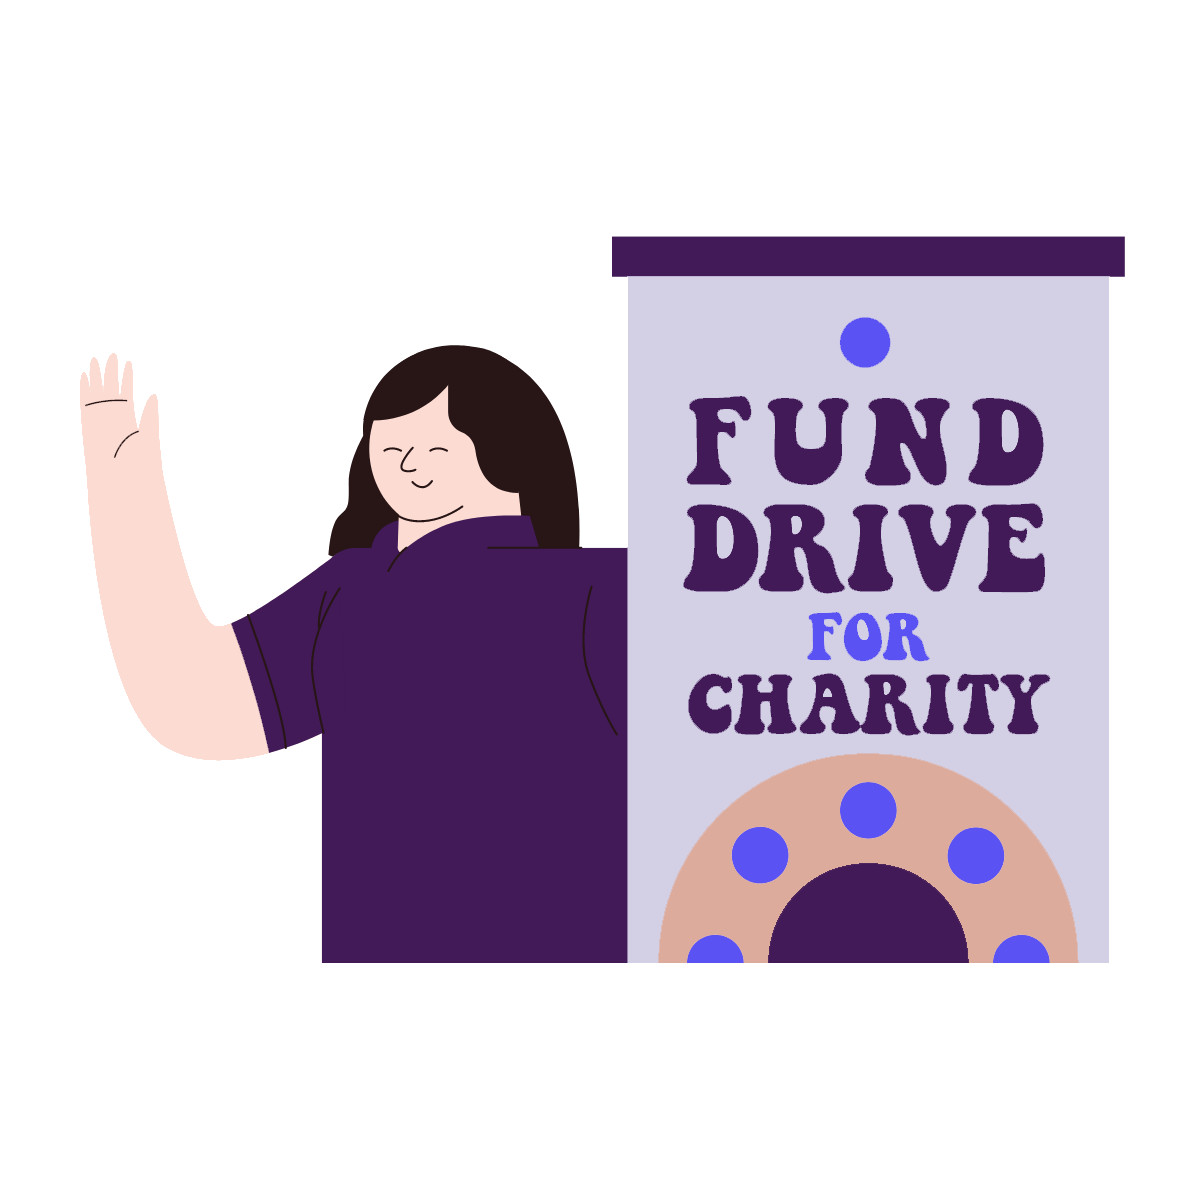 fund drive for charity